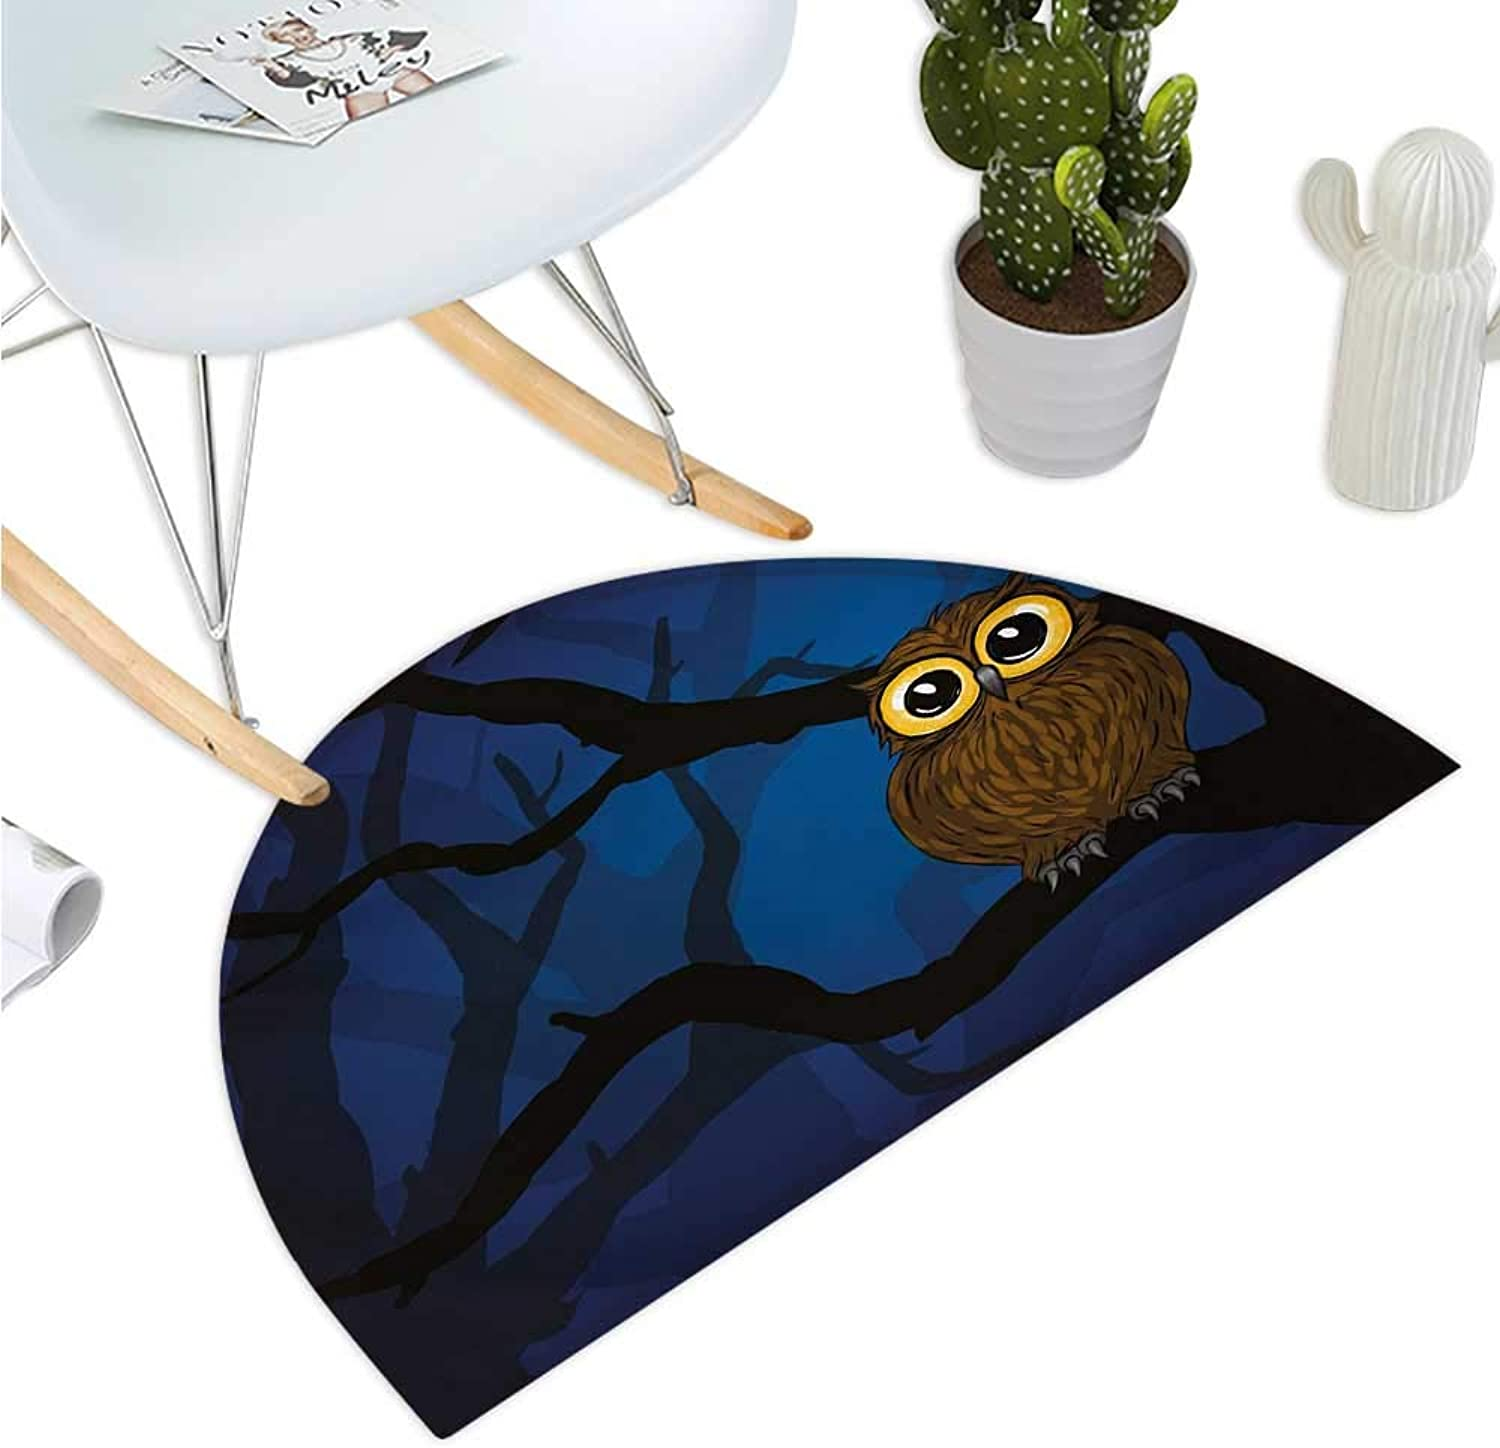 Night Half Round Door mats Cute Owl Sitting on a Tree Branch Mysterious Woods Spooky Forest Cartoon Entry Door Mat H 39.3  xD 59  Navy bluee Black Brown